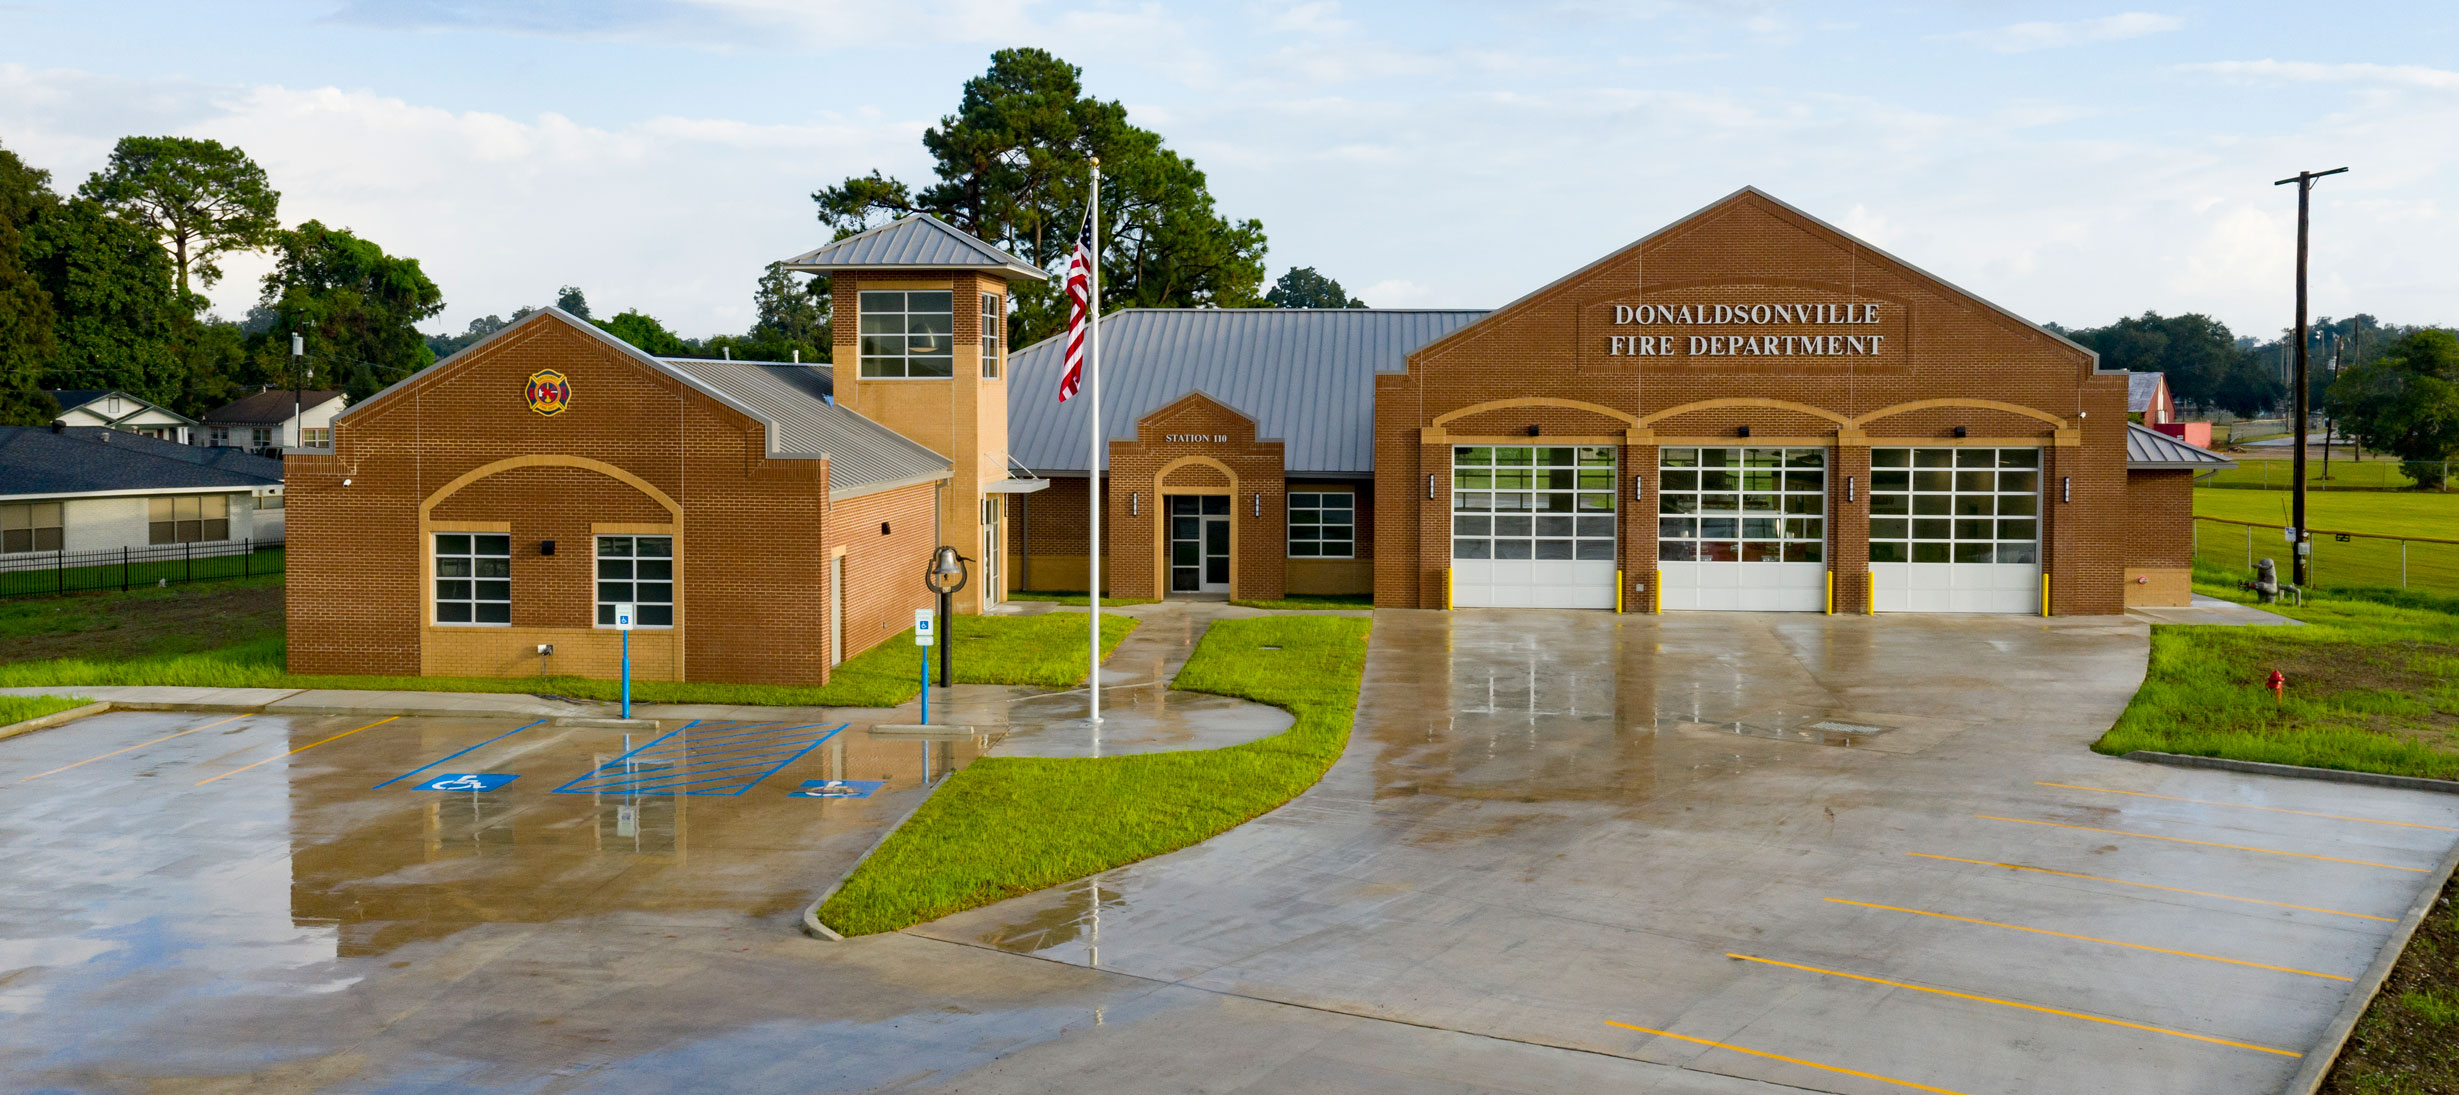 Exterior of Donaldsonville Fire Department